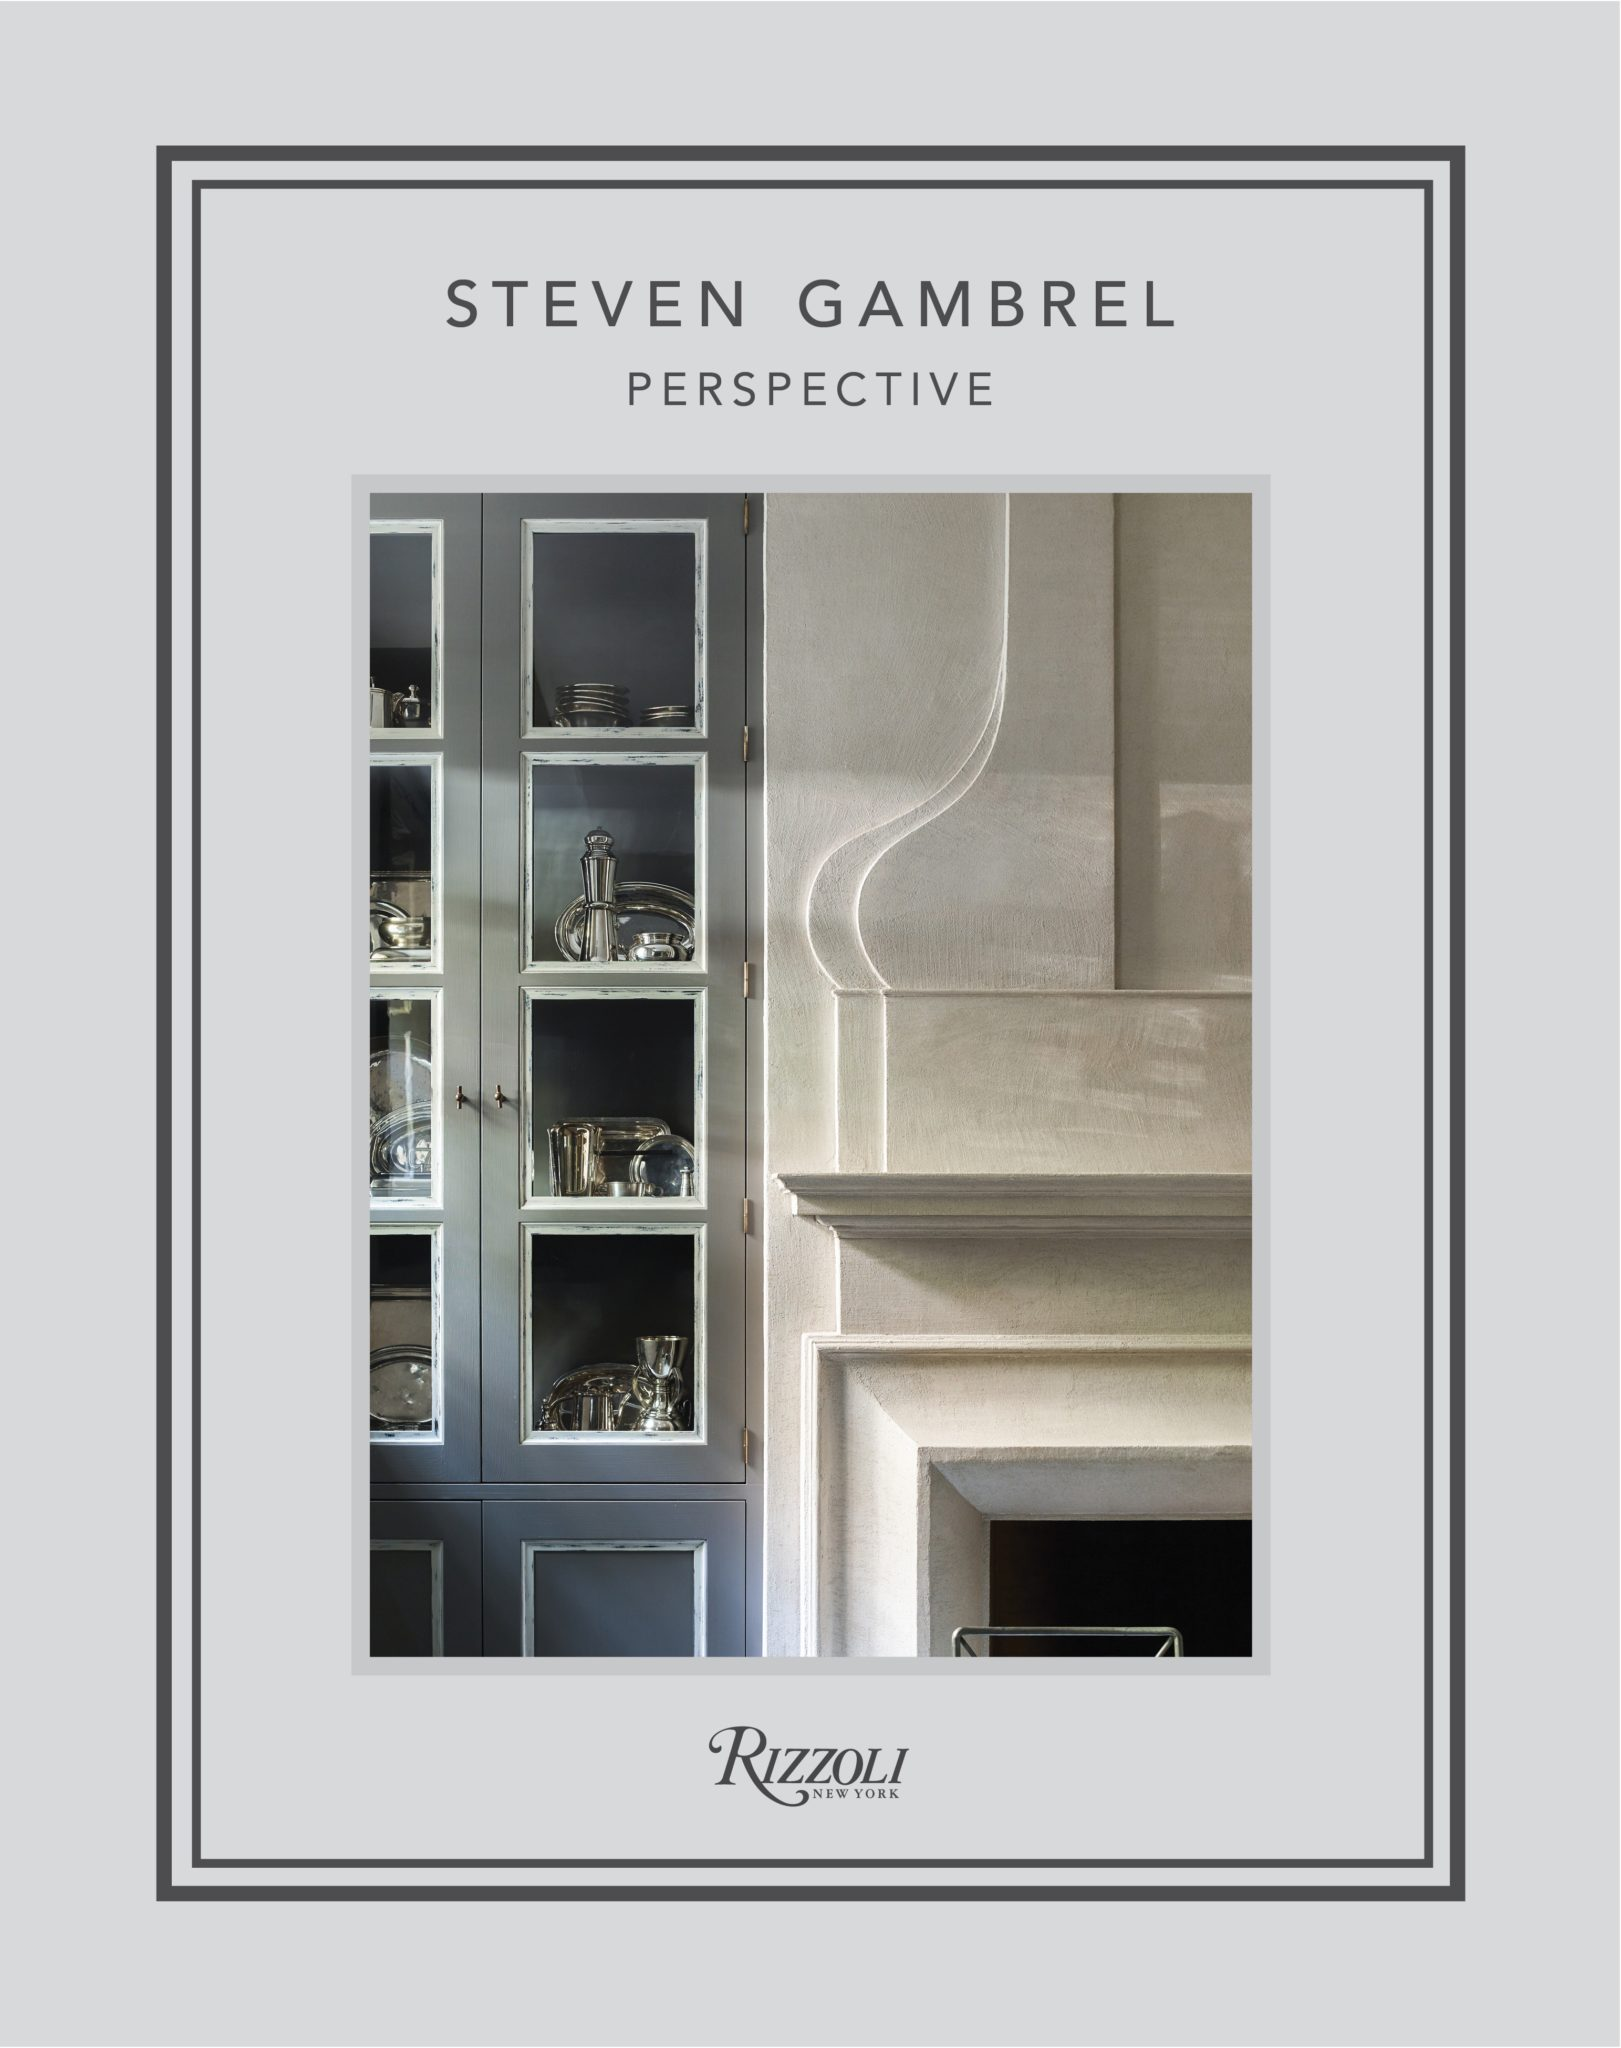 The cover of the designer's latest book,Steven Gambrel:Perspective,published by Rizzoli.